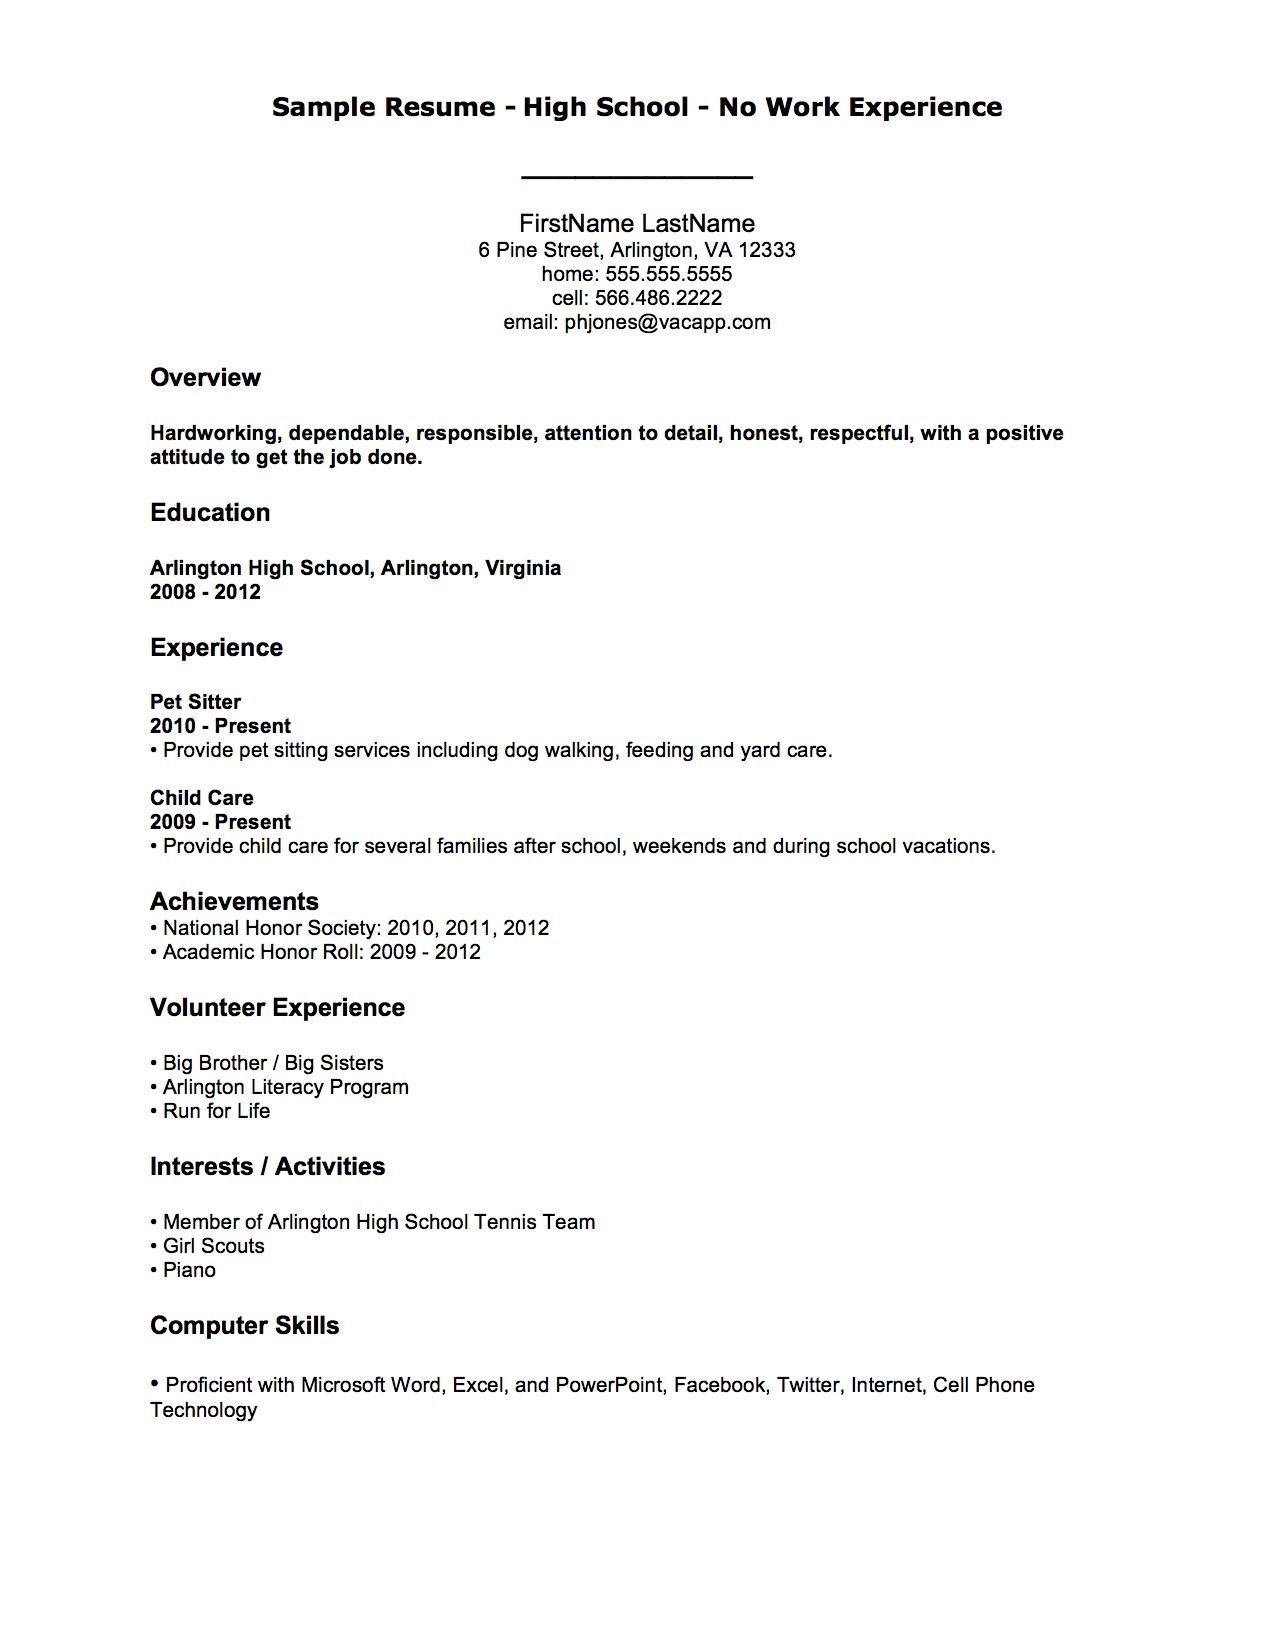 Resume Examples With No Job Experience | 1-Resume Examples | Sample ...